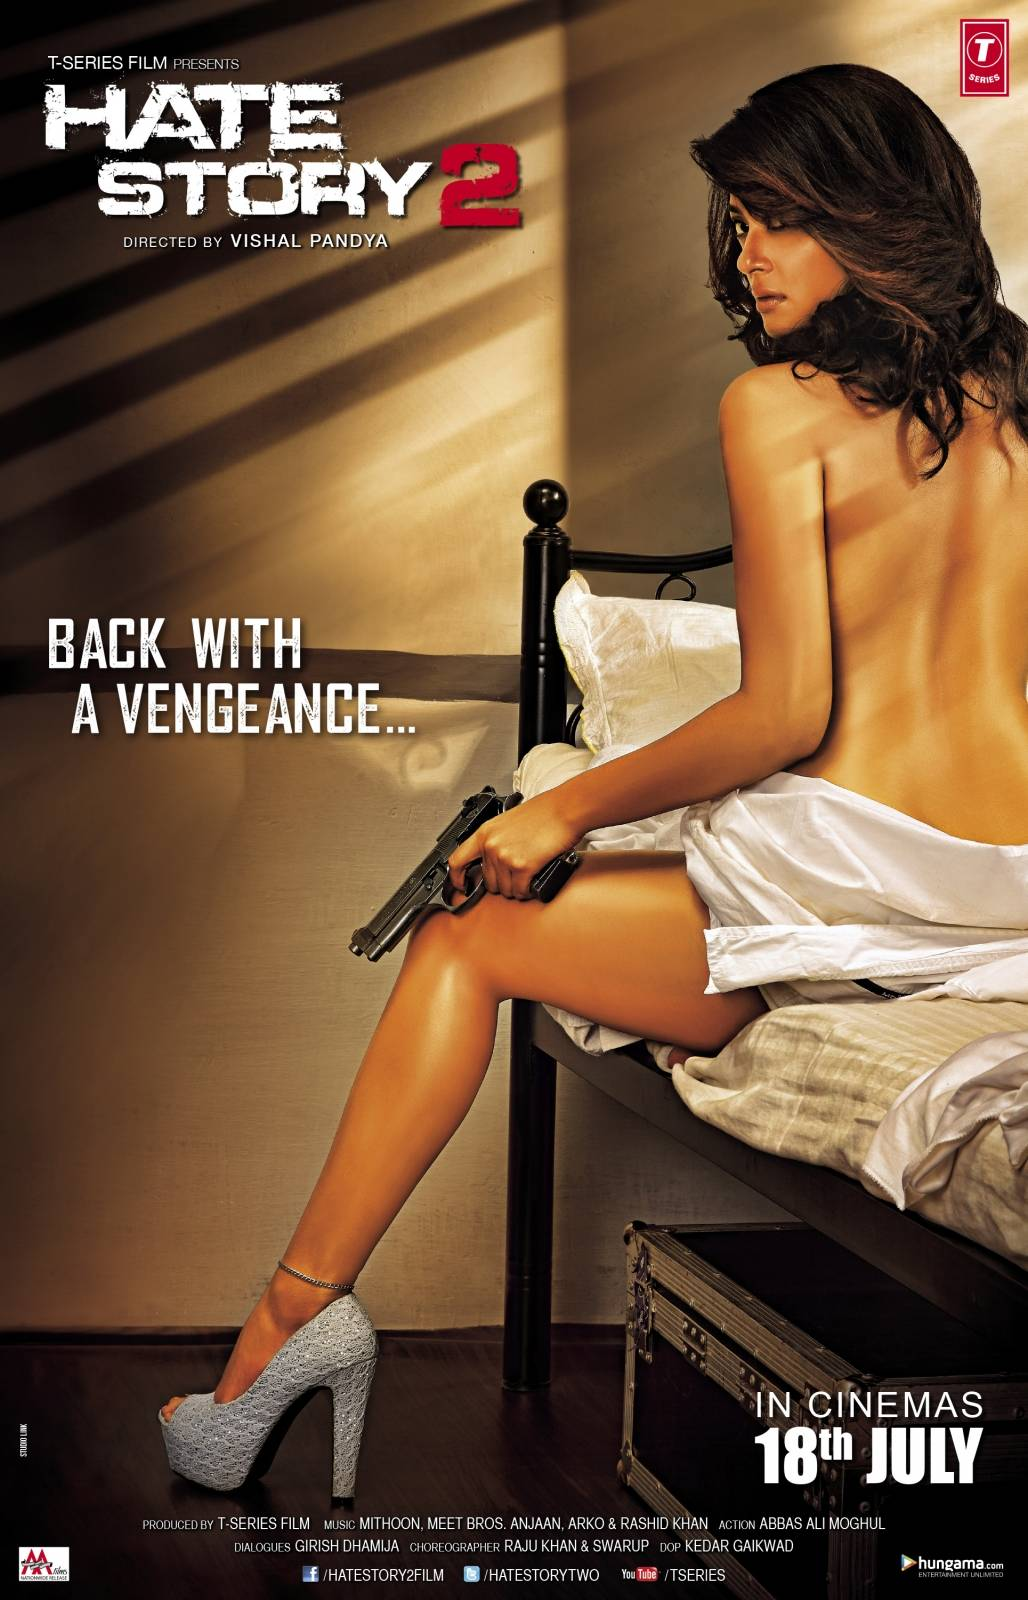 Hate story 2 (2014) watch full hd streaming movie online free.